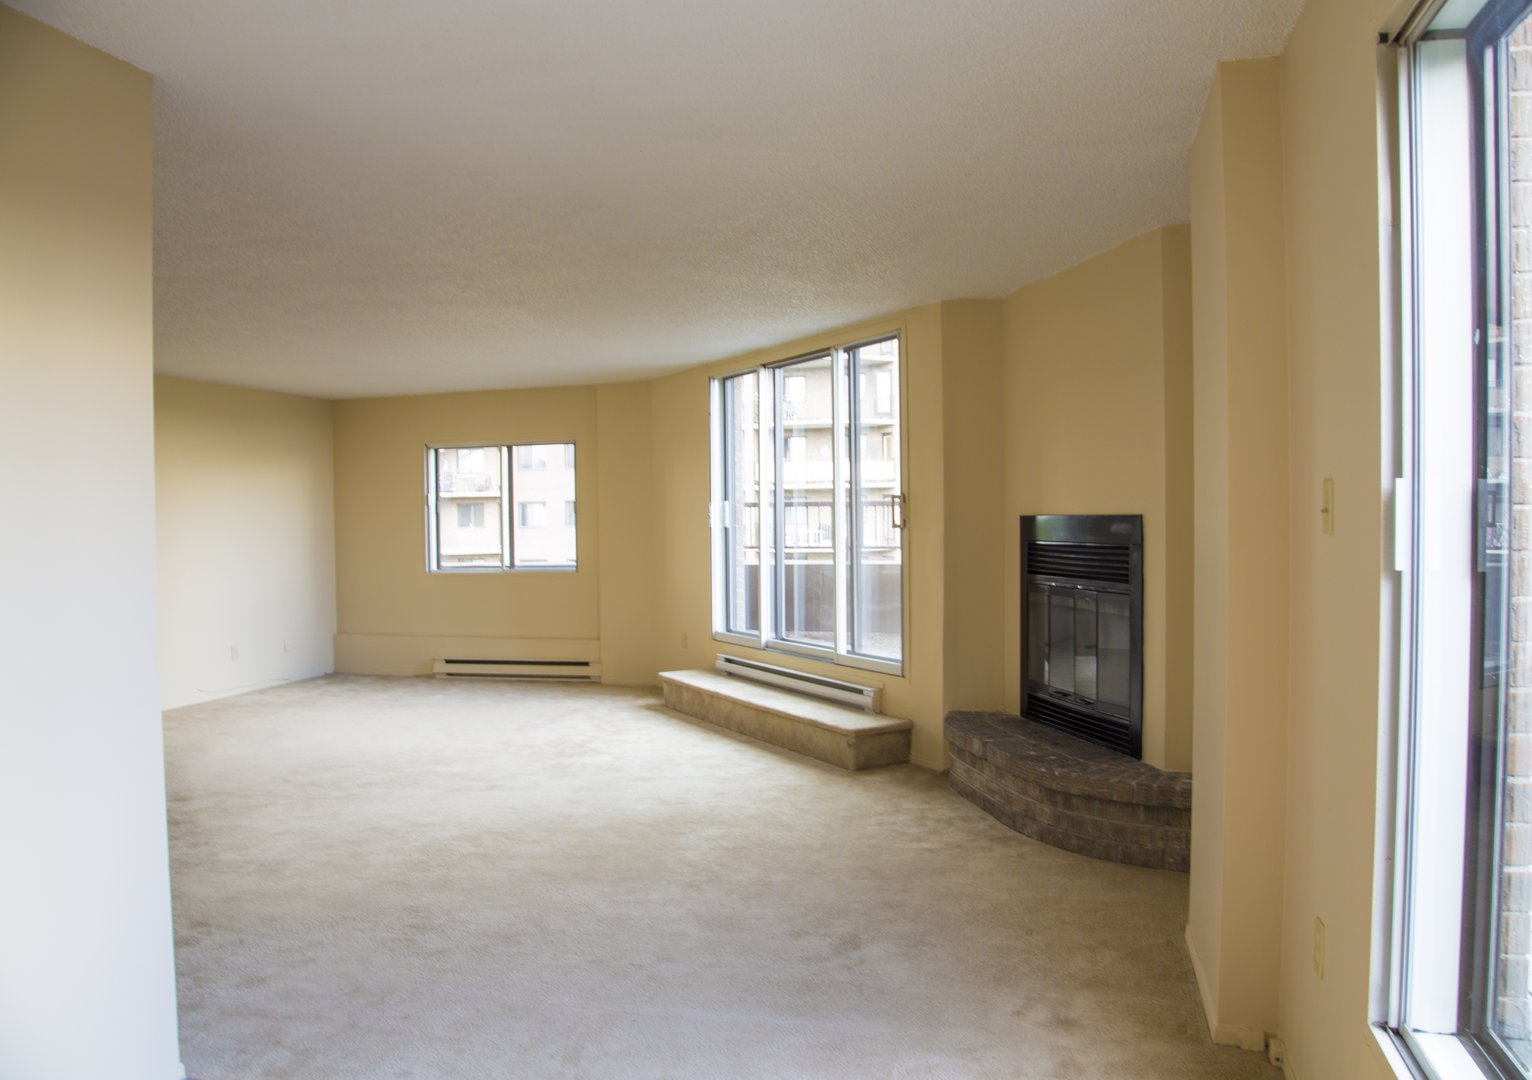 High-Rise Apartment for rent at 50 Quintin, suite 111, Ville Saint-Laurent, QC. This is the empty room with natural light, fireplace and carpet.